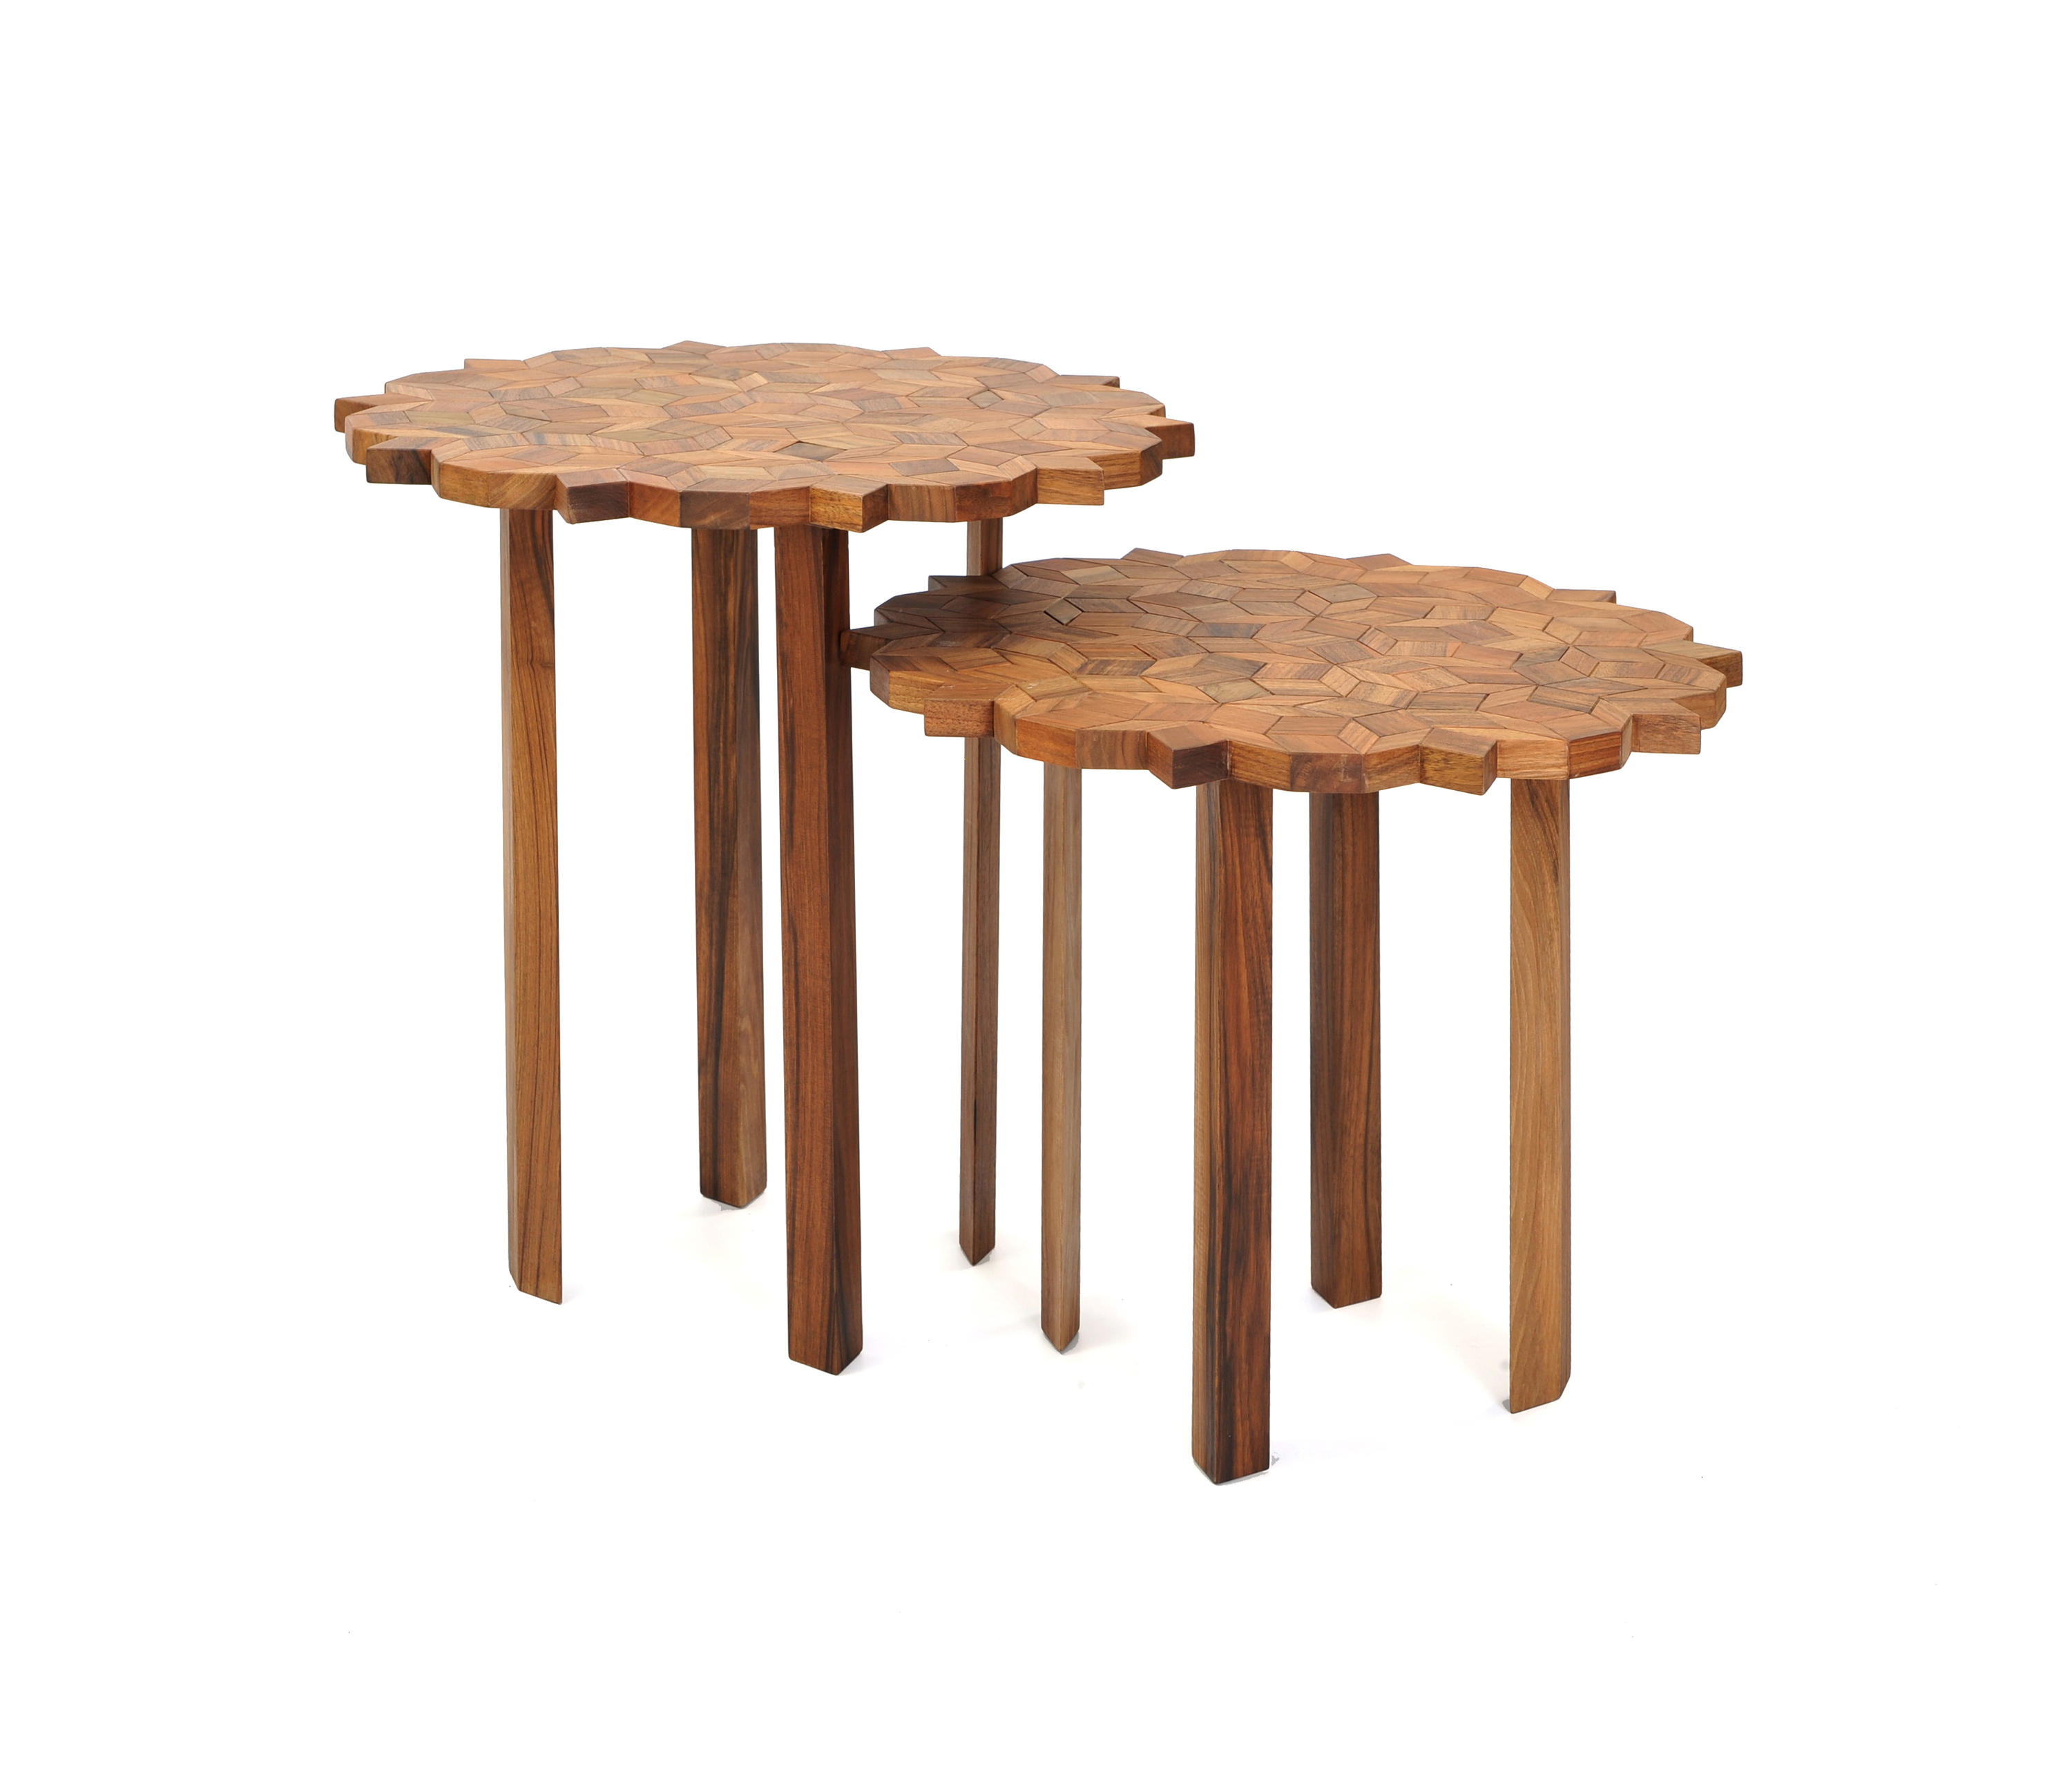 OMBRA TABLE - Lounge tables from Zanat   Architonic